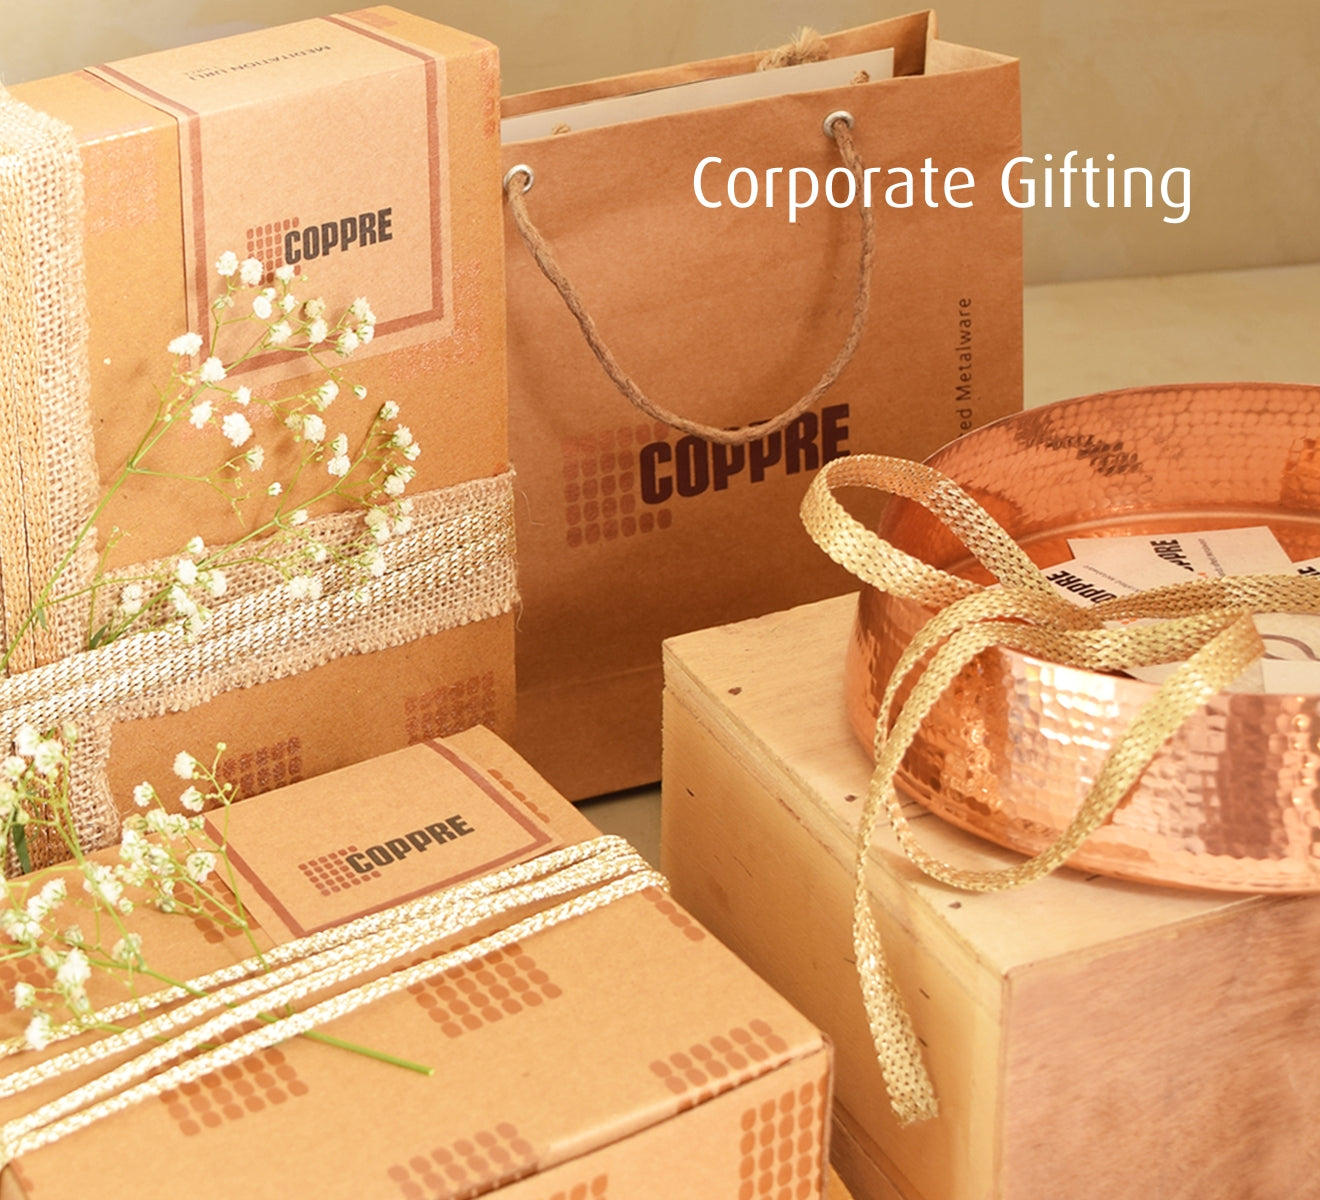 Carporate Gifting